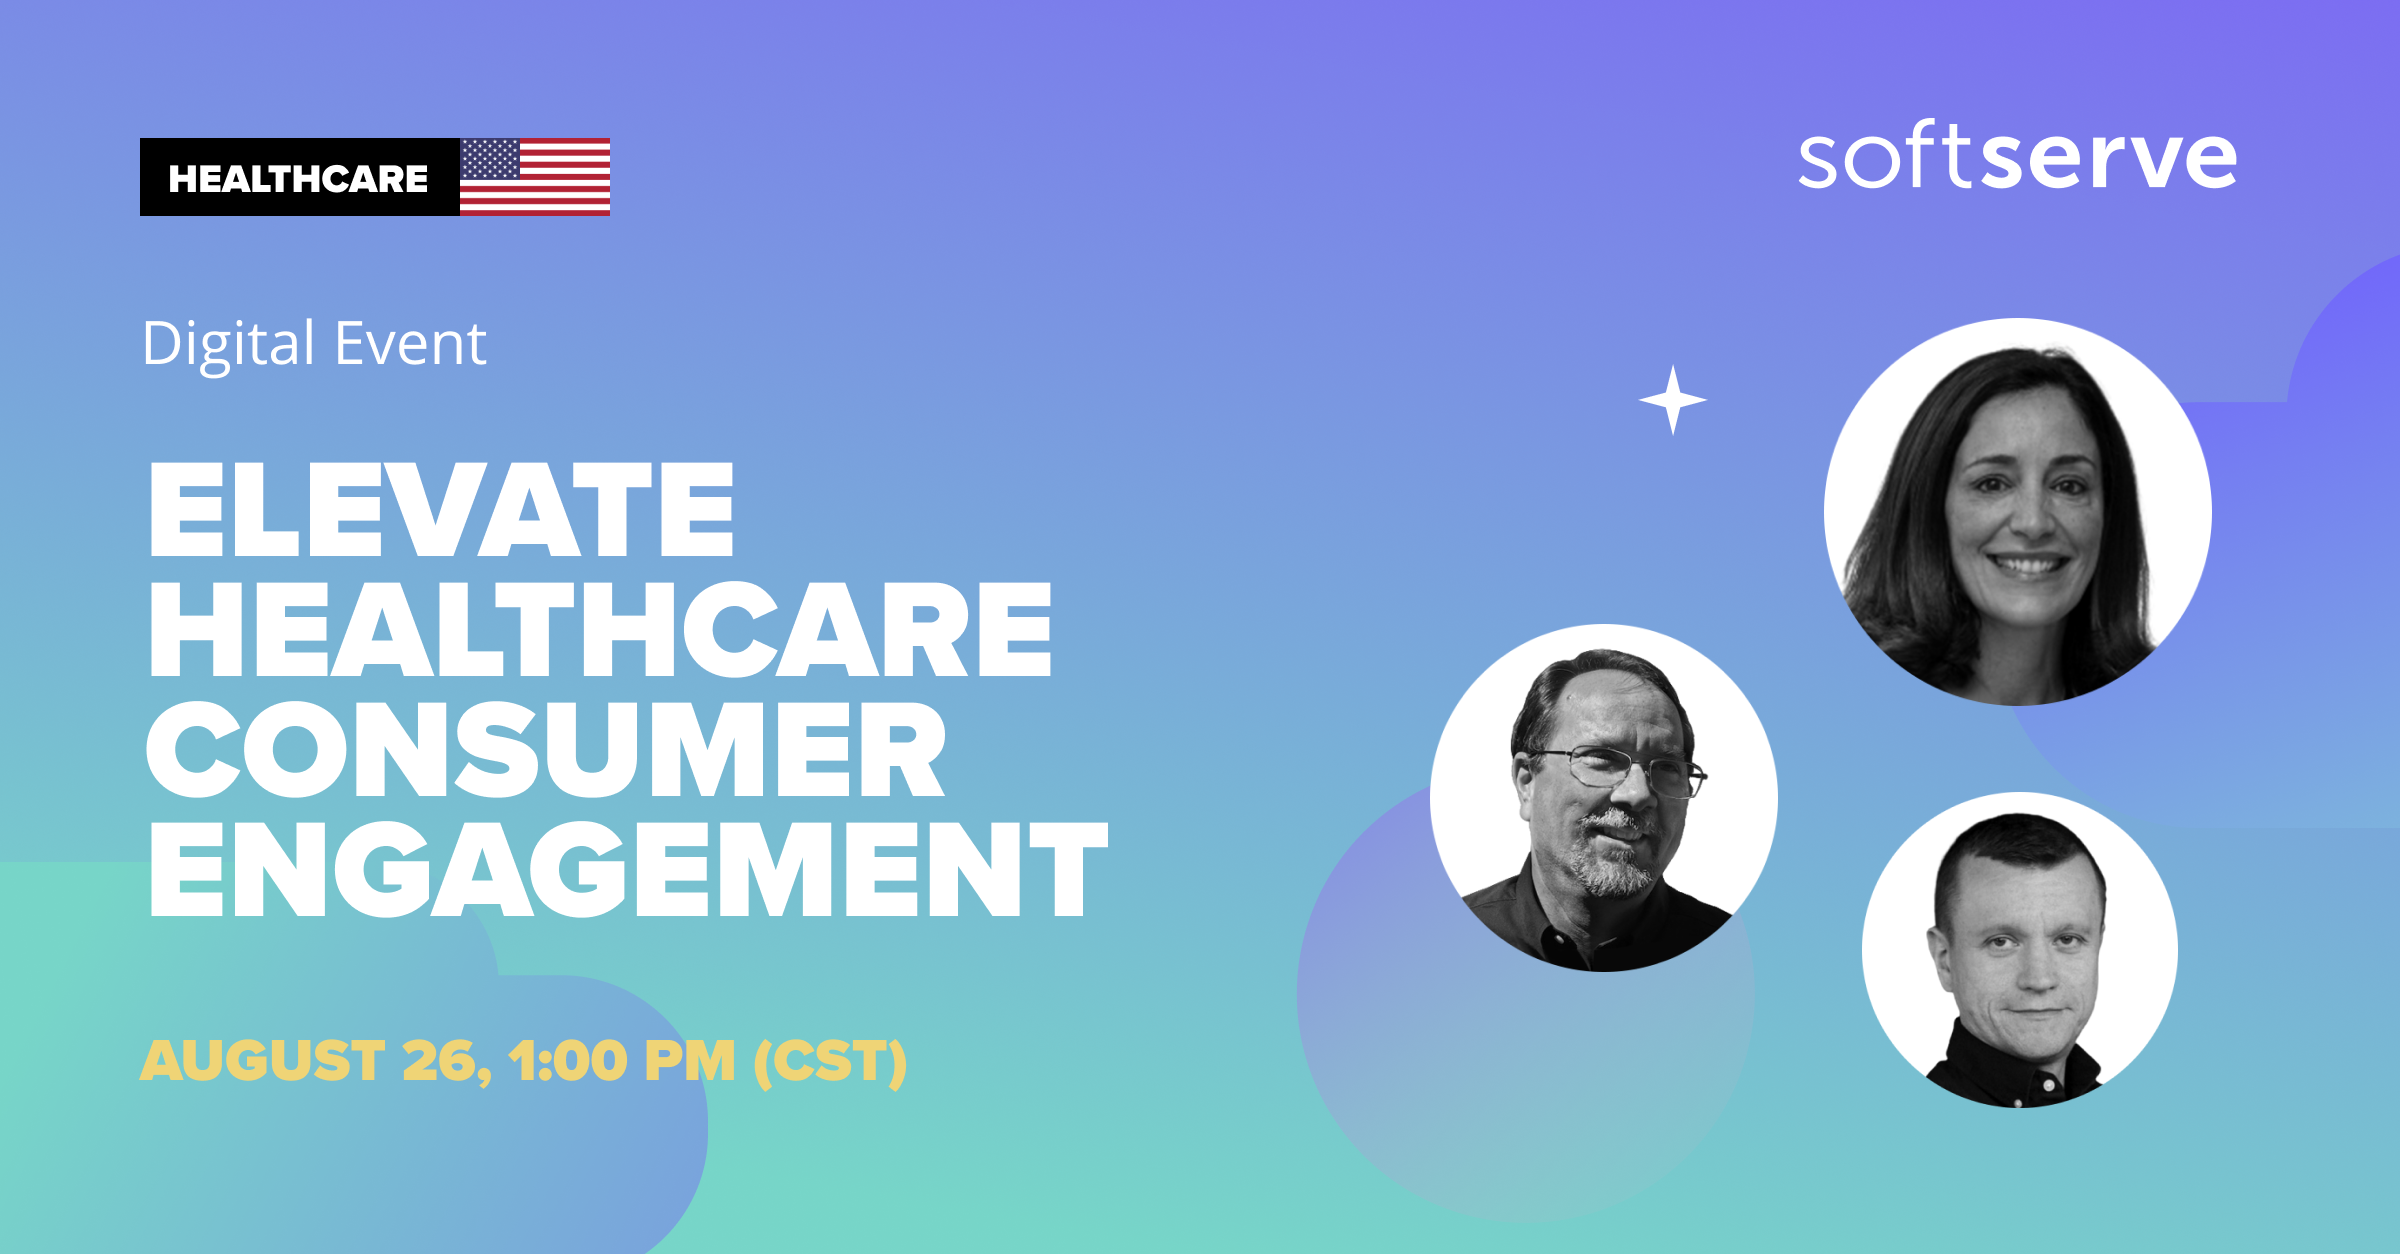 Healthcare Consumers Engagement social icon